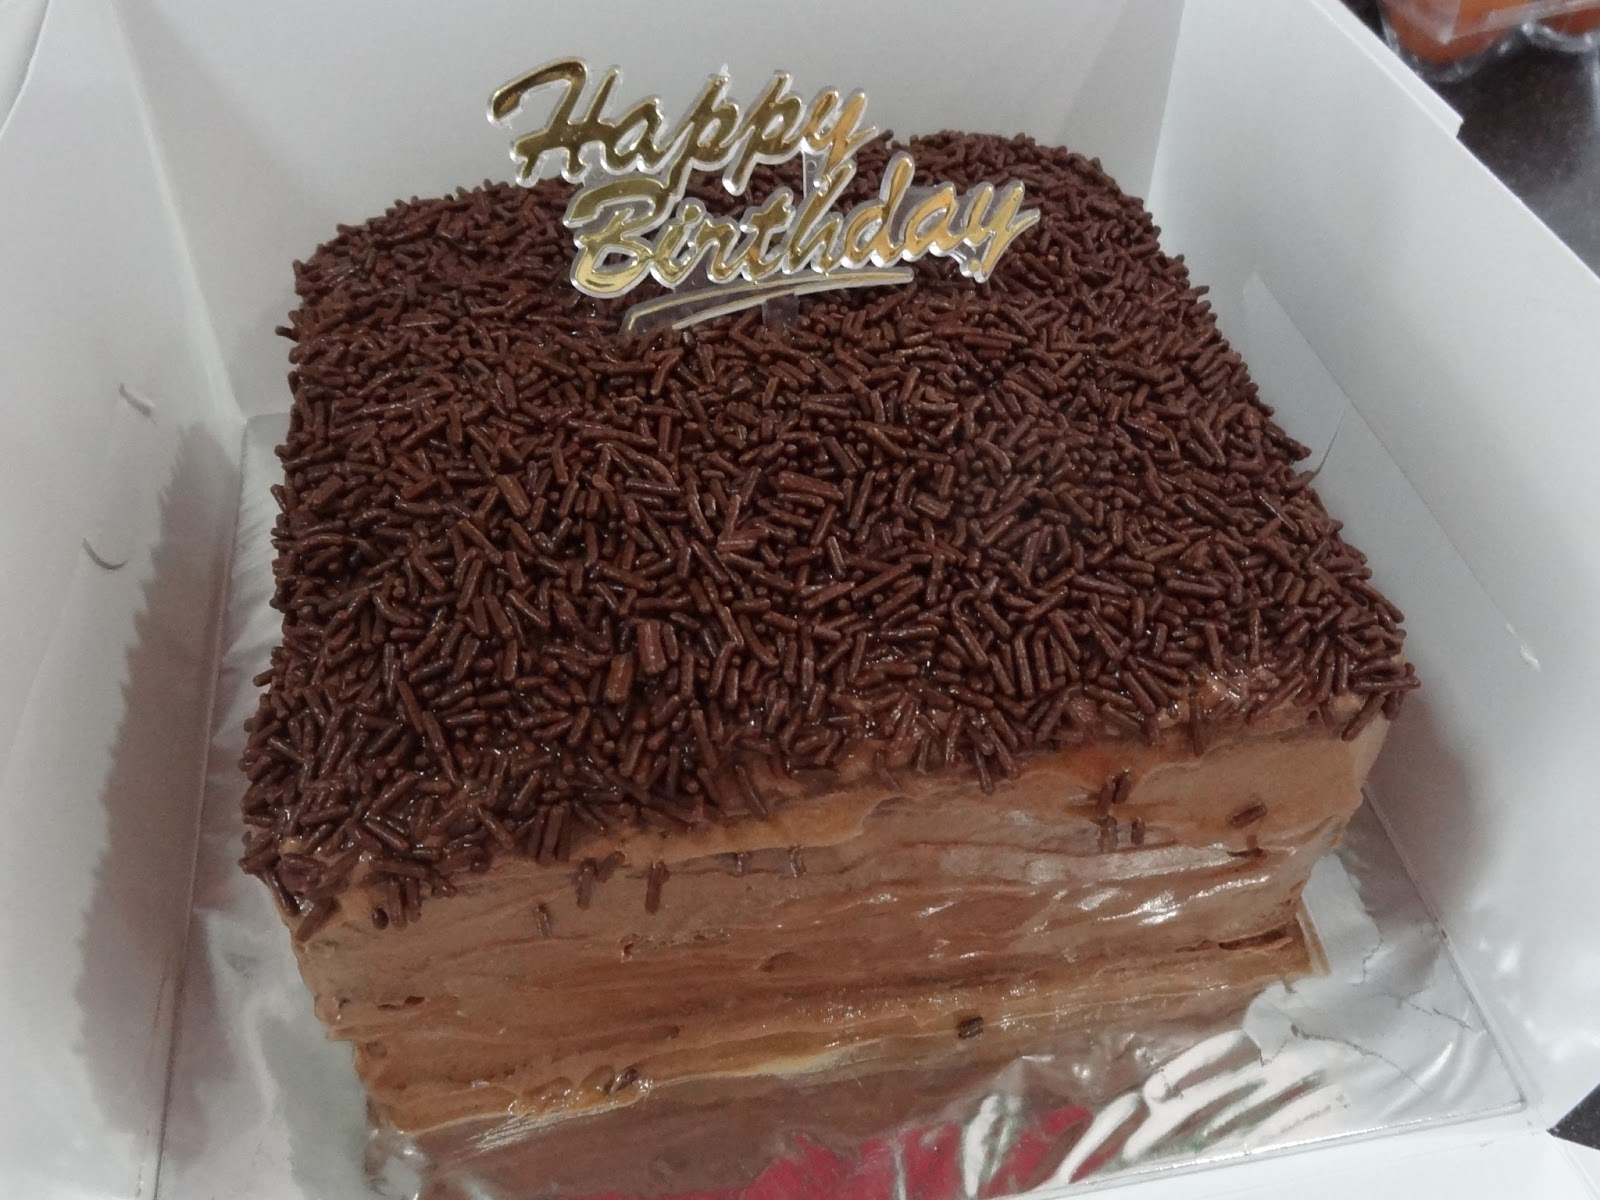 ... Dream . Hope: Chocolate Sponge Cake with Chocolate Nutella Frosting